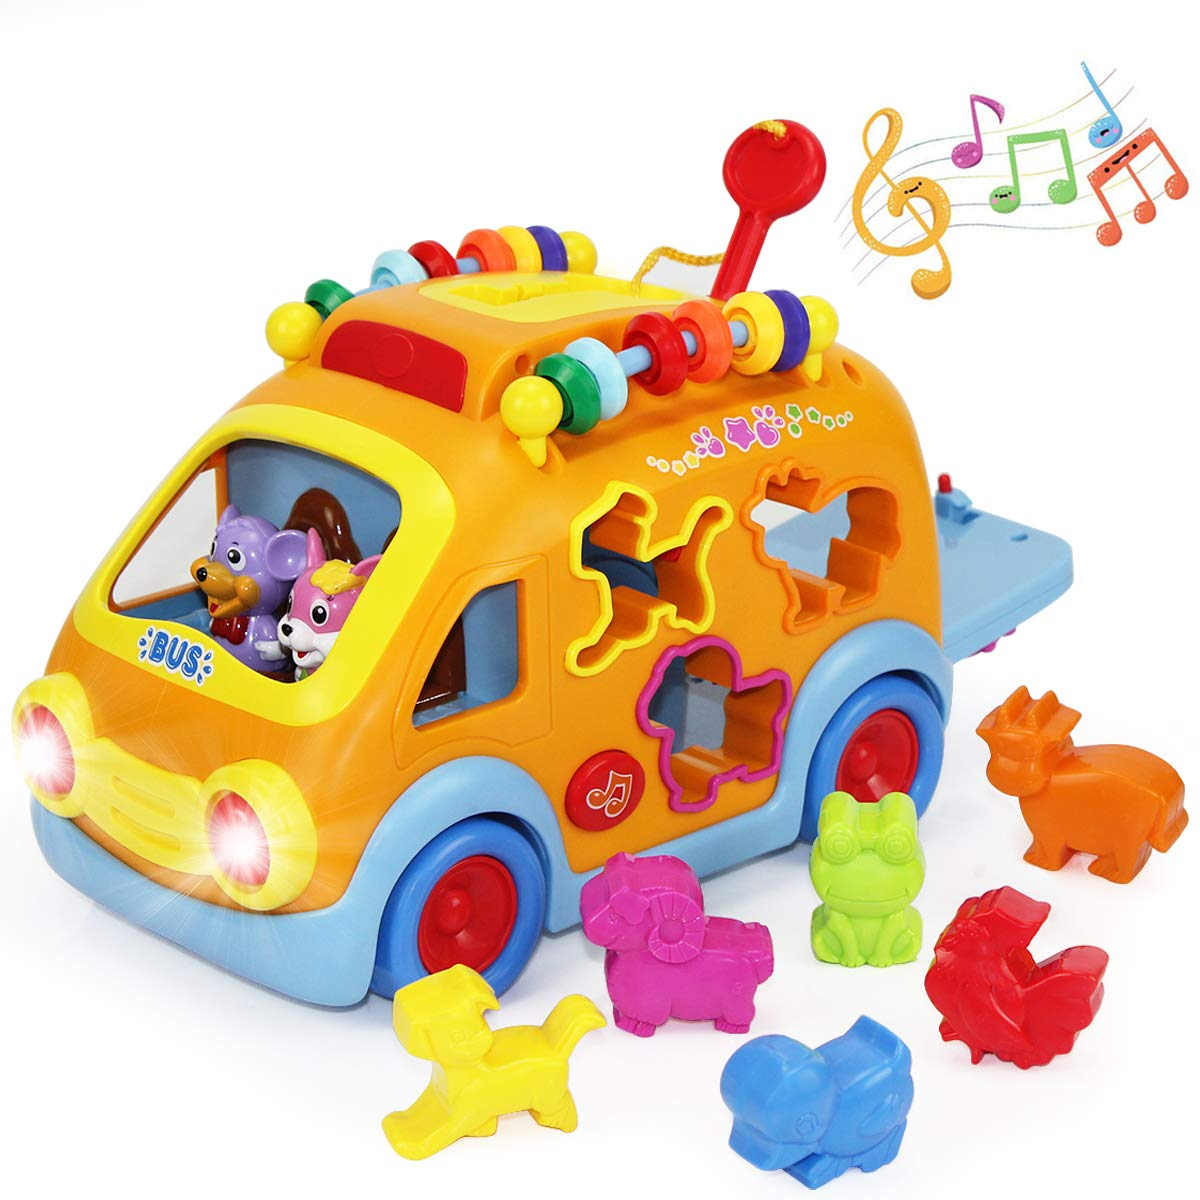 iPlay, iLearn Electronic Musical Bus, Baby Sensory Toy, 3D Animal Matching Car w/ Gear, Early Development, Learning, Educational Gift for 1, 2 Year Olds Girls Boys Toddlers Kids by iPlay, iLearn (Image #1)